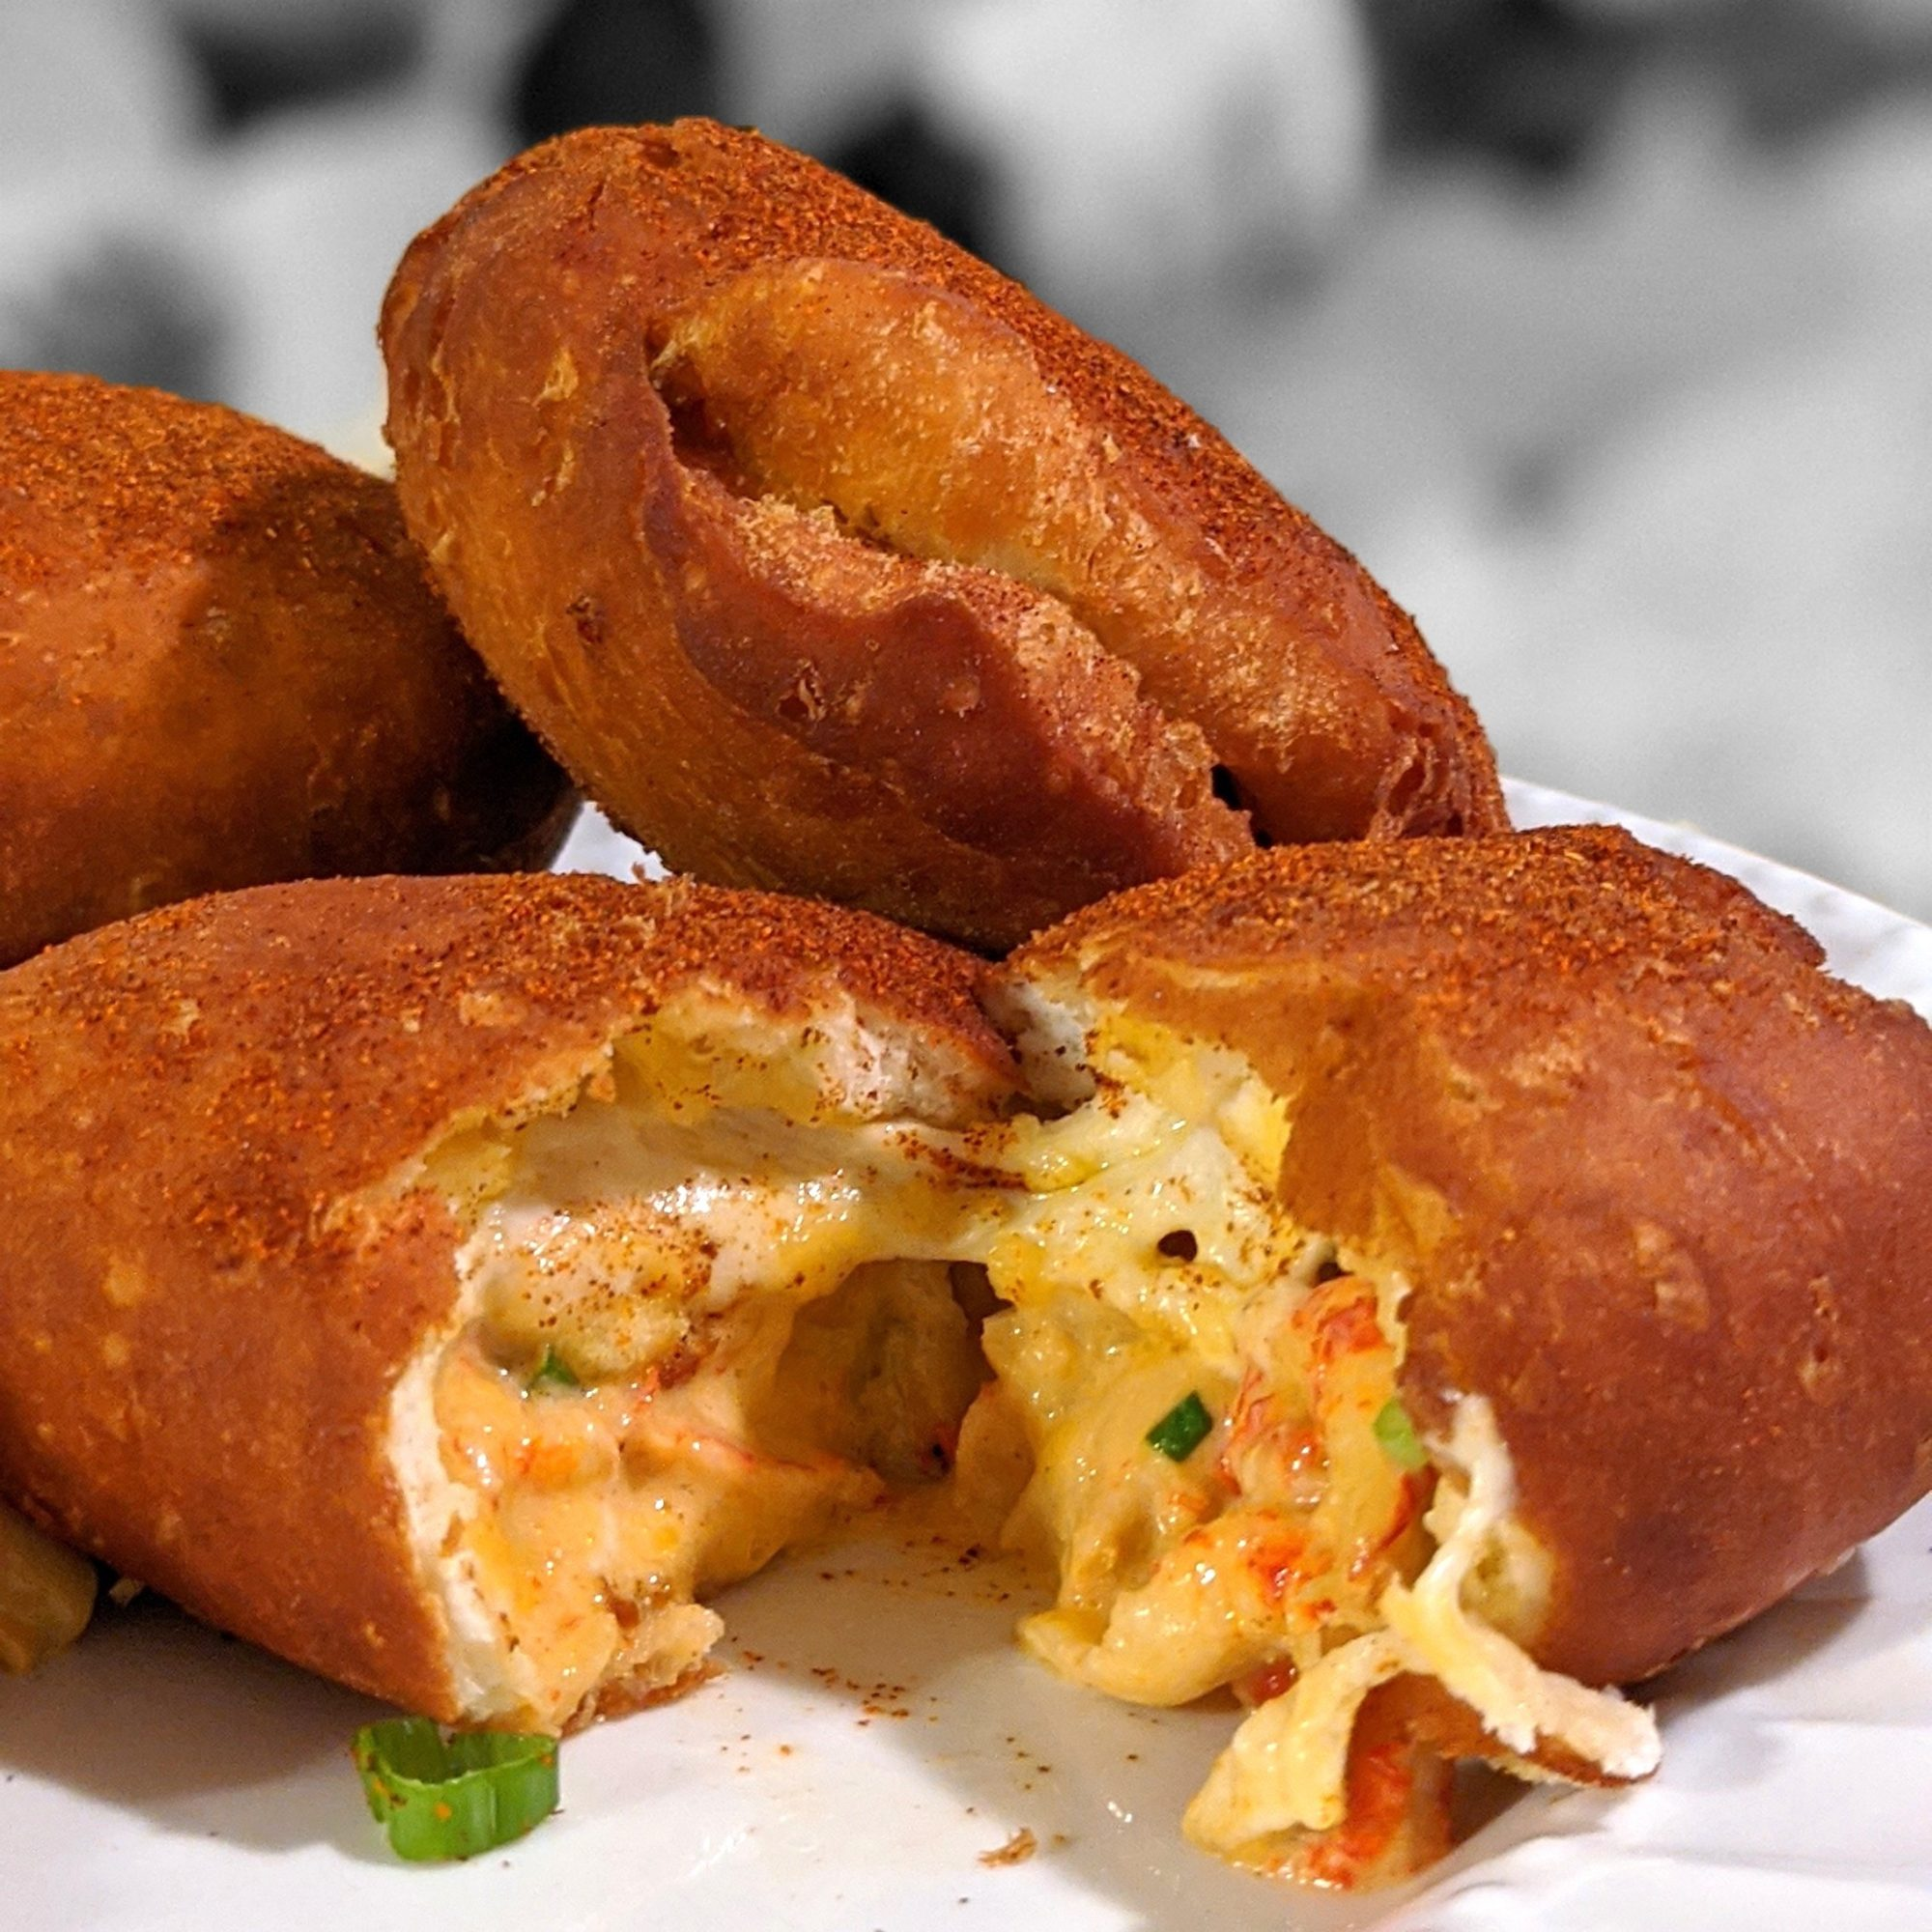 plate of savory beignets filled with cheese and crawfish